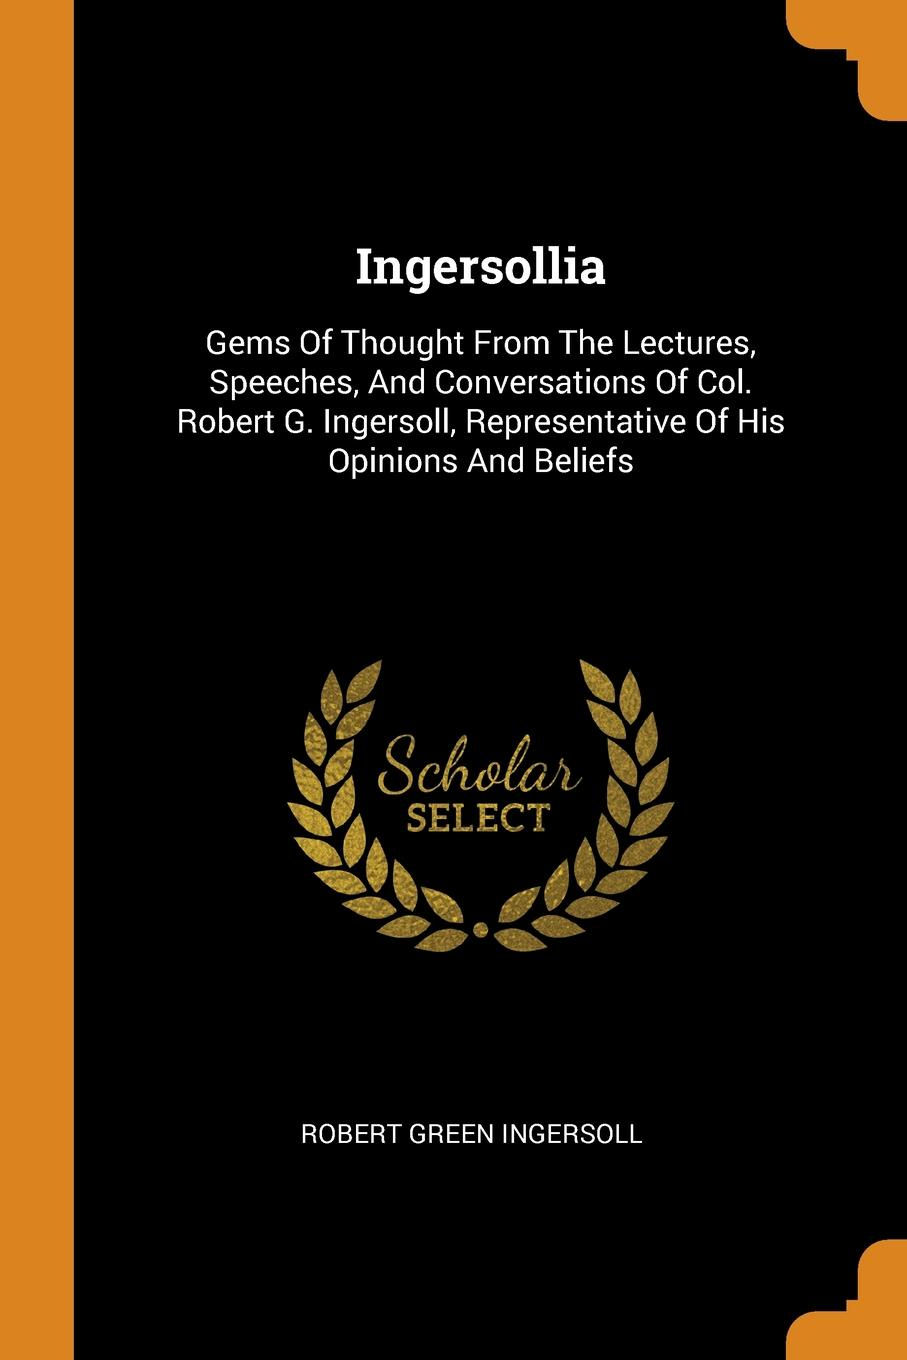 Robert Green Ingersoll Ingersollia. Gems Of Thought From The Lectures, Speeches, And Conversations Of Col. Robert G. Ingersoll, Representative Of His Opinions And Beliefs robert green ingersoll the works of robert g ingersoll v 9